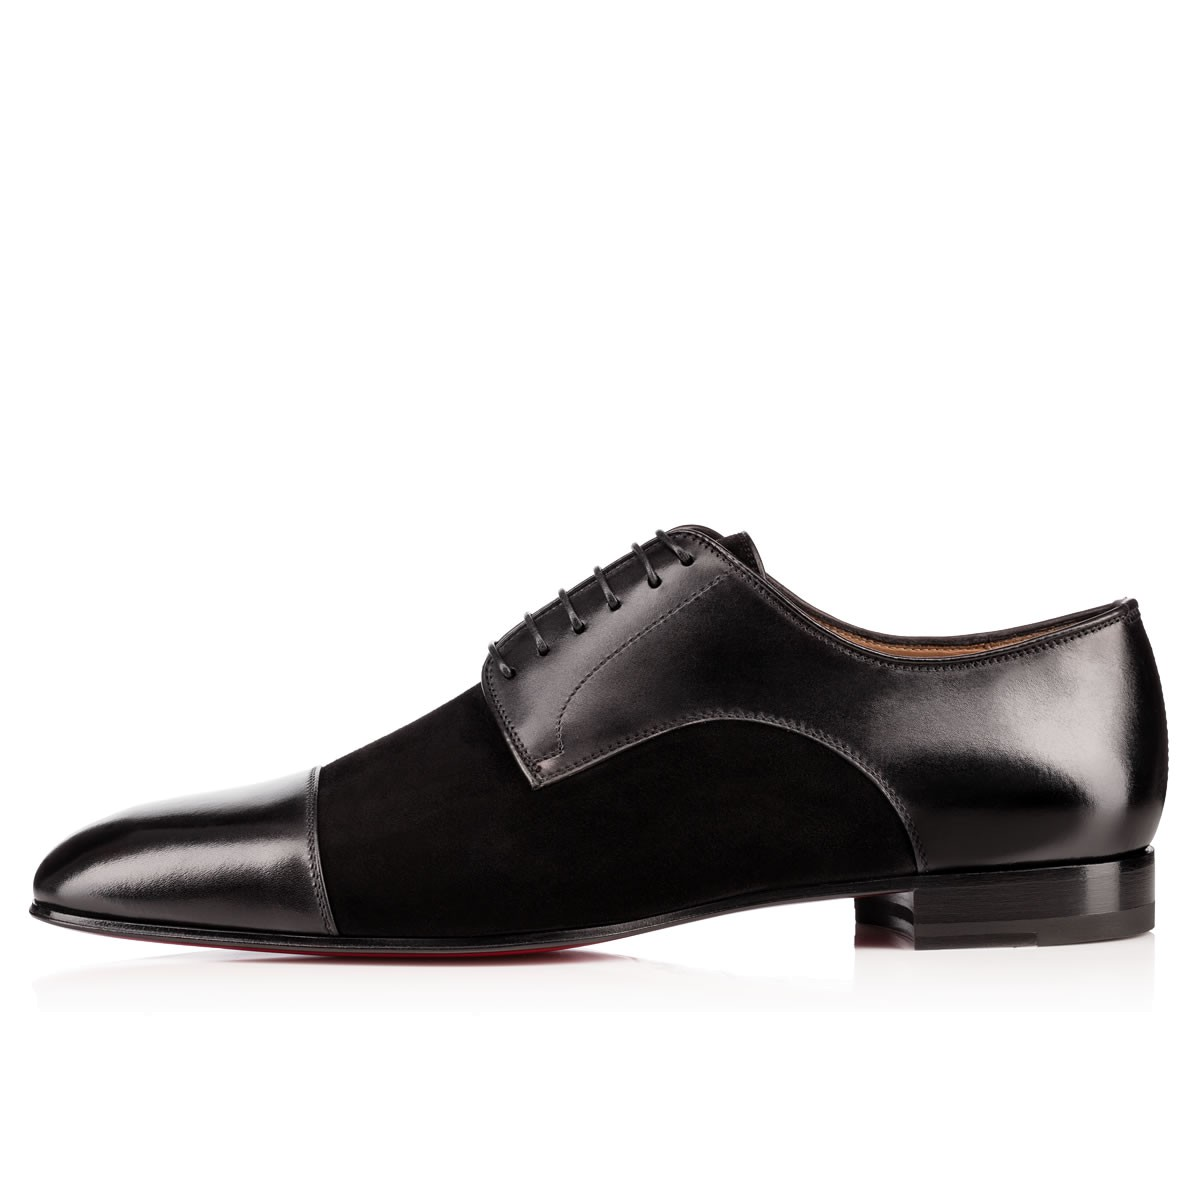 Shoes - Top Daviol Flat - Christian Louboutin